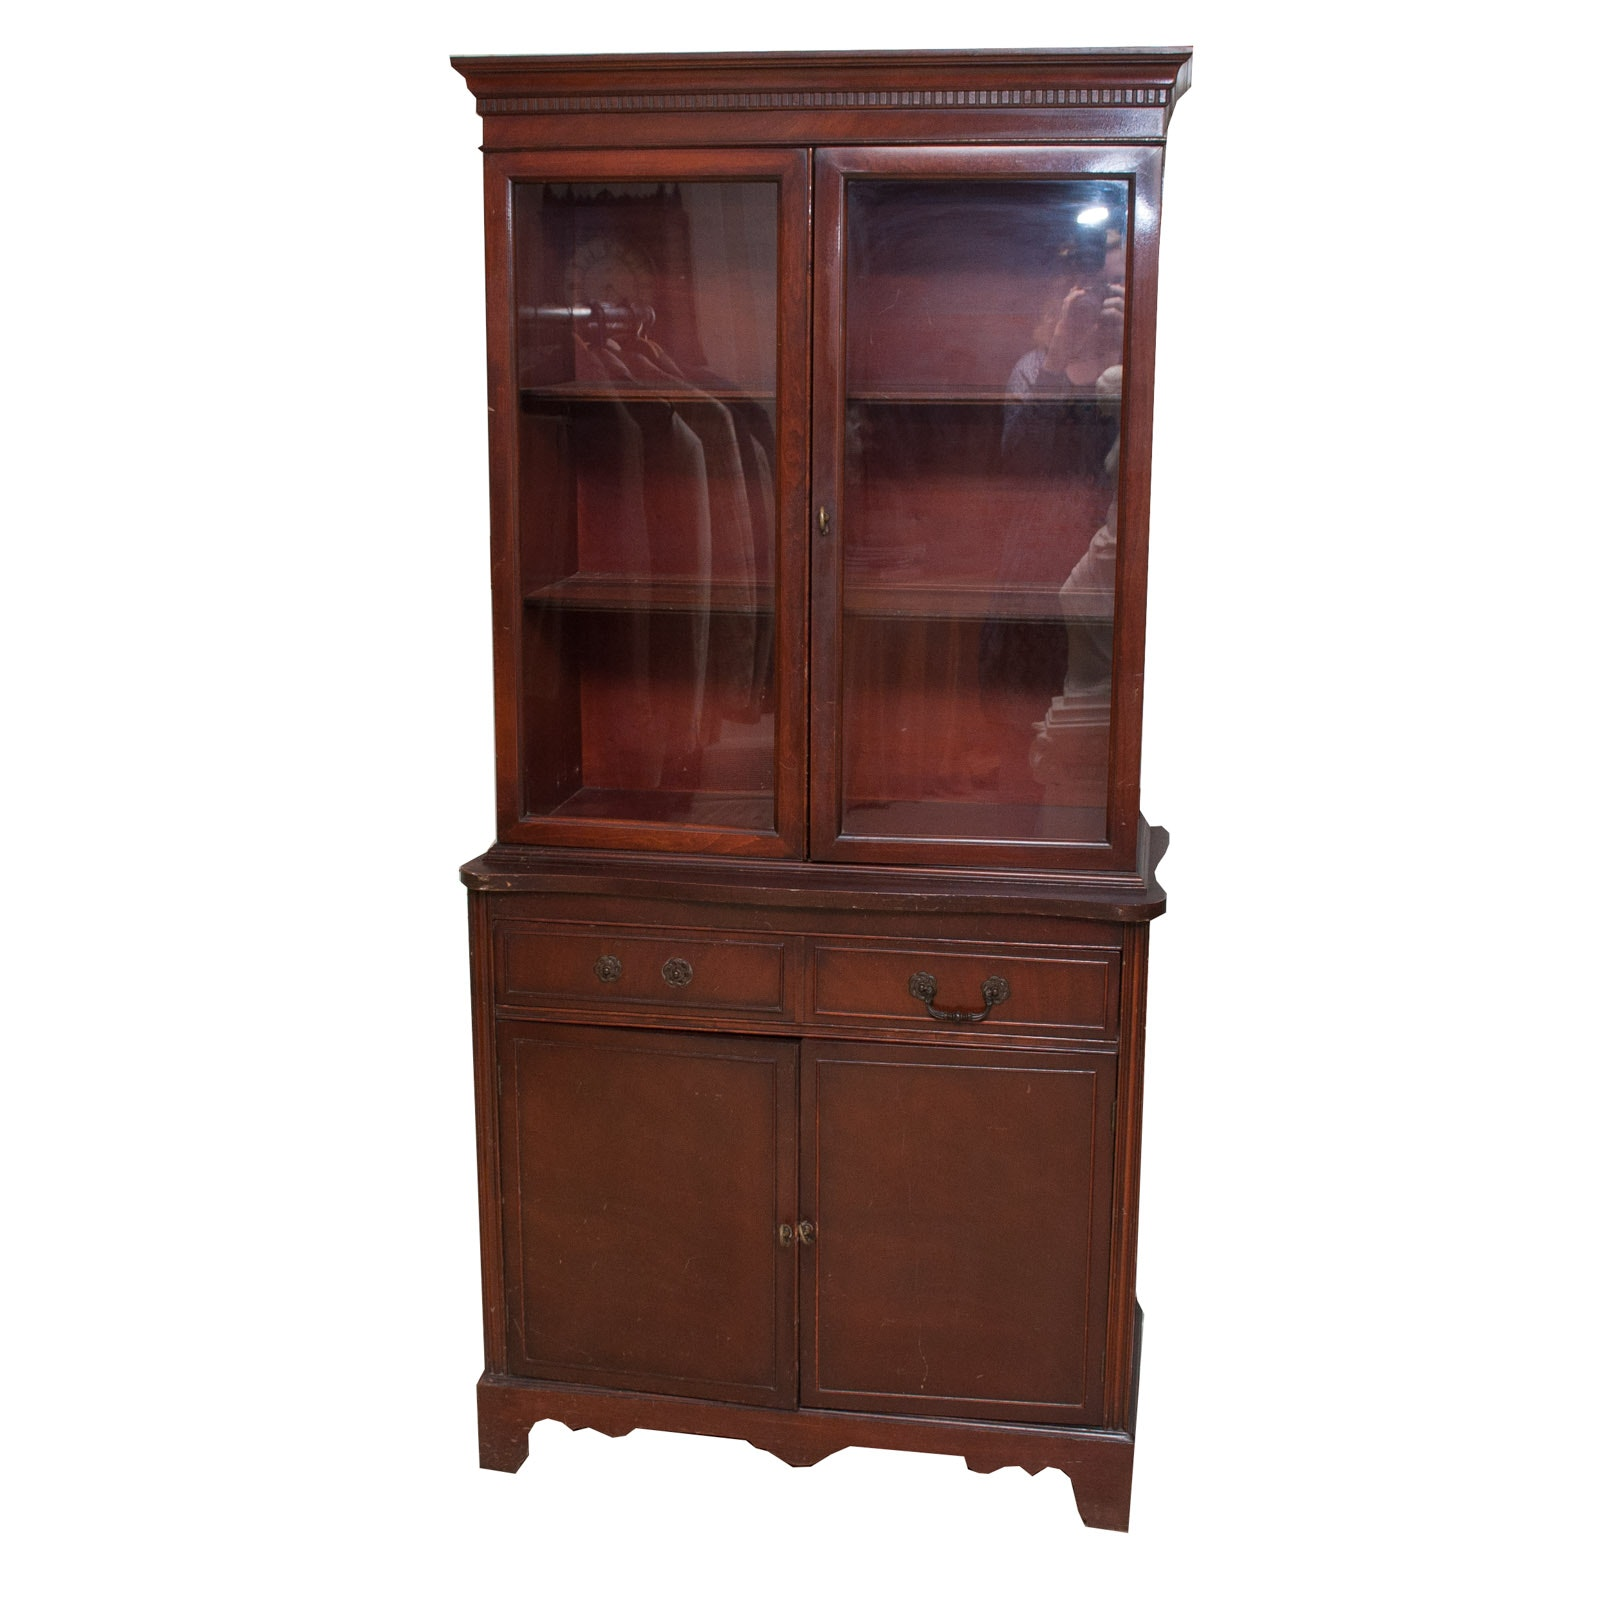 Federal Style Mahogany China Cabinet, Early to Mid-20th Century